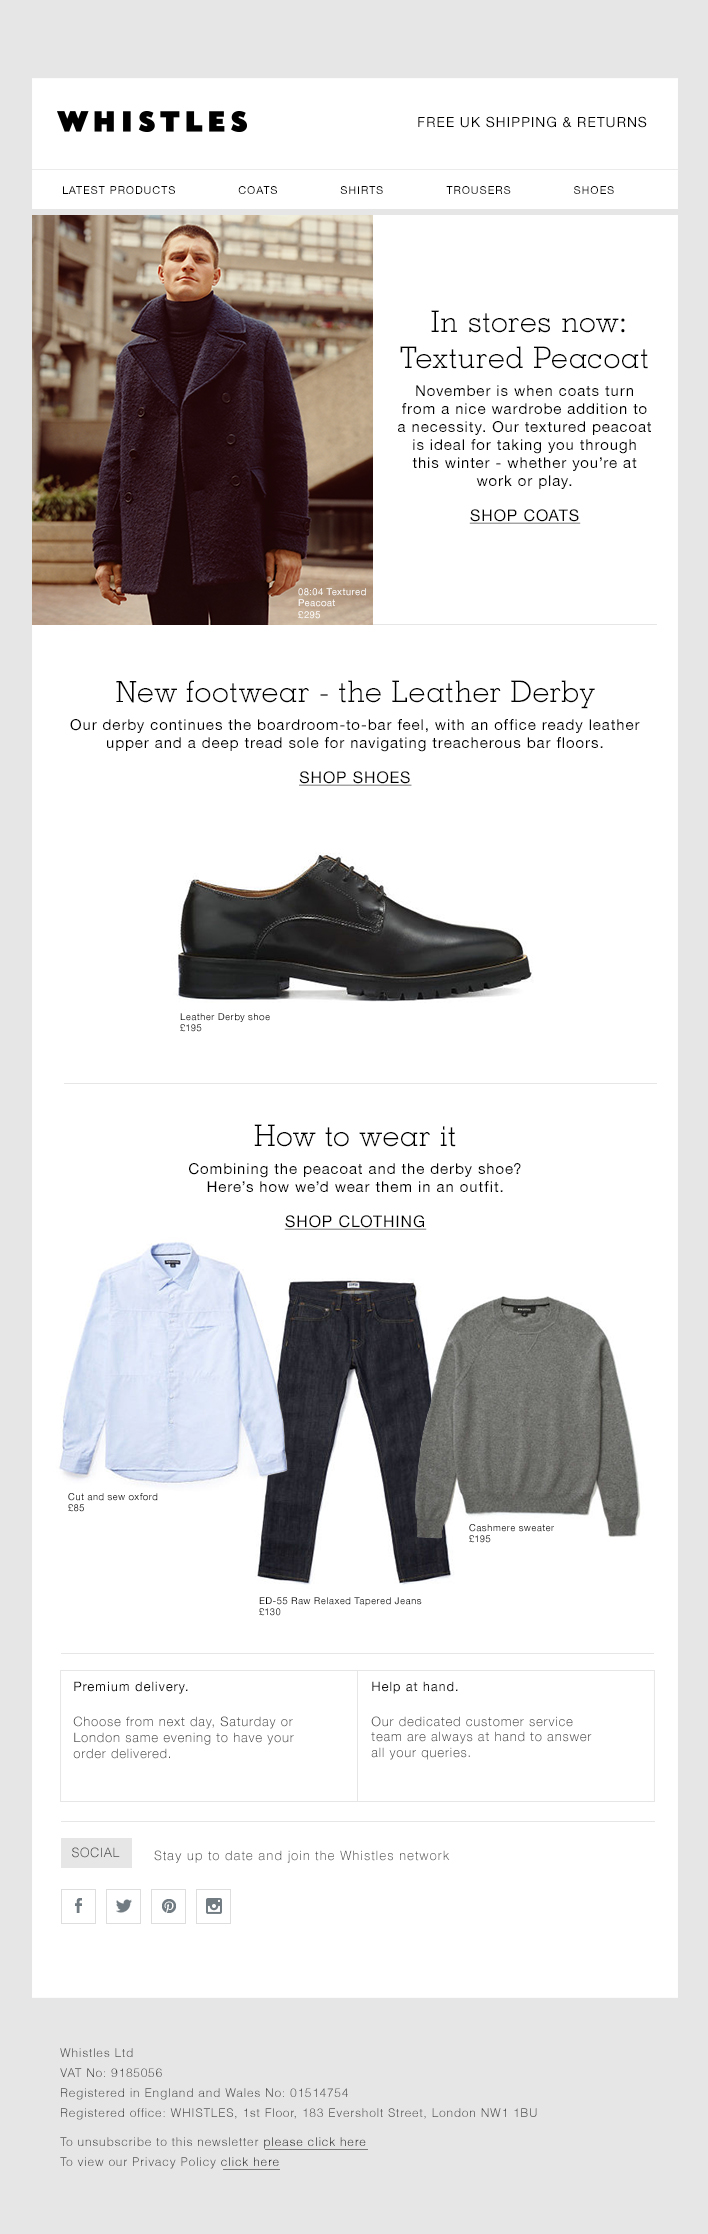 WH_NEWSLETTER_WK 41_mens.jpg